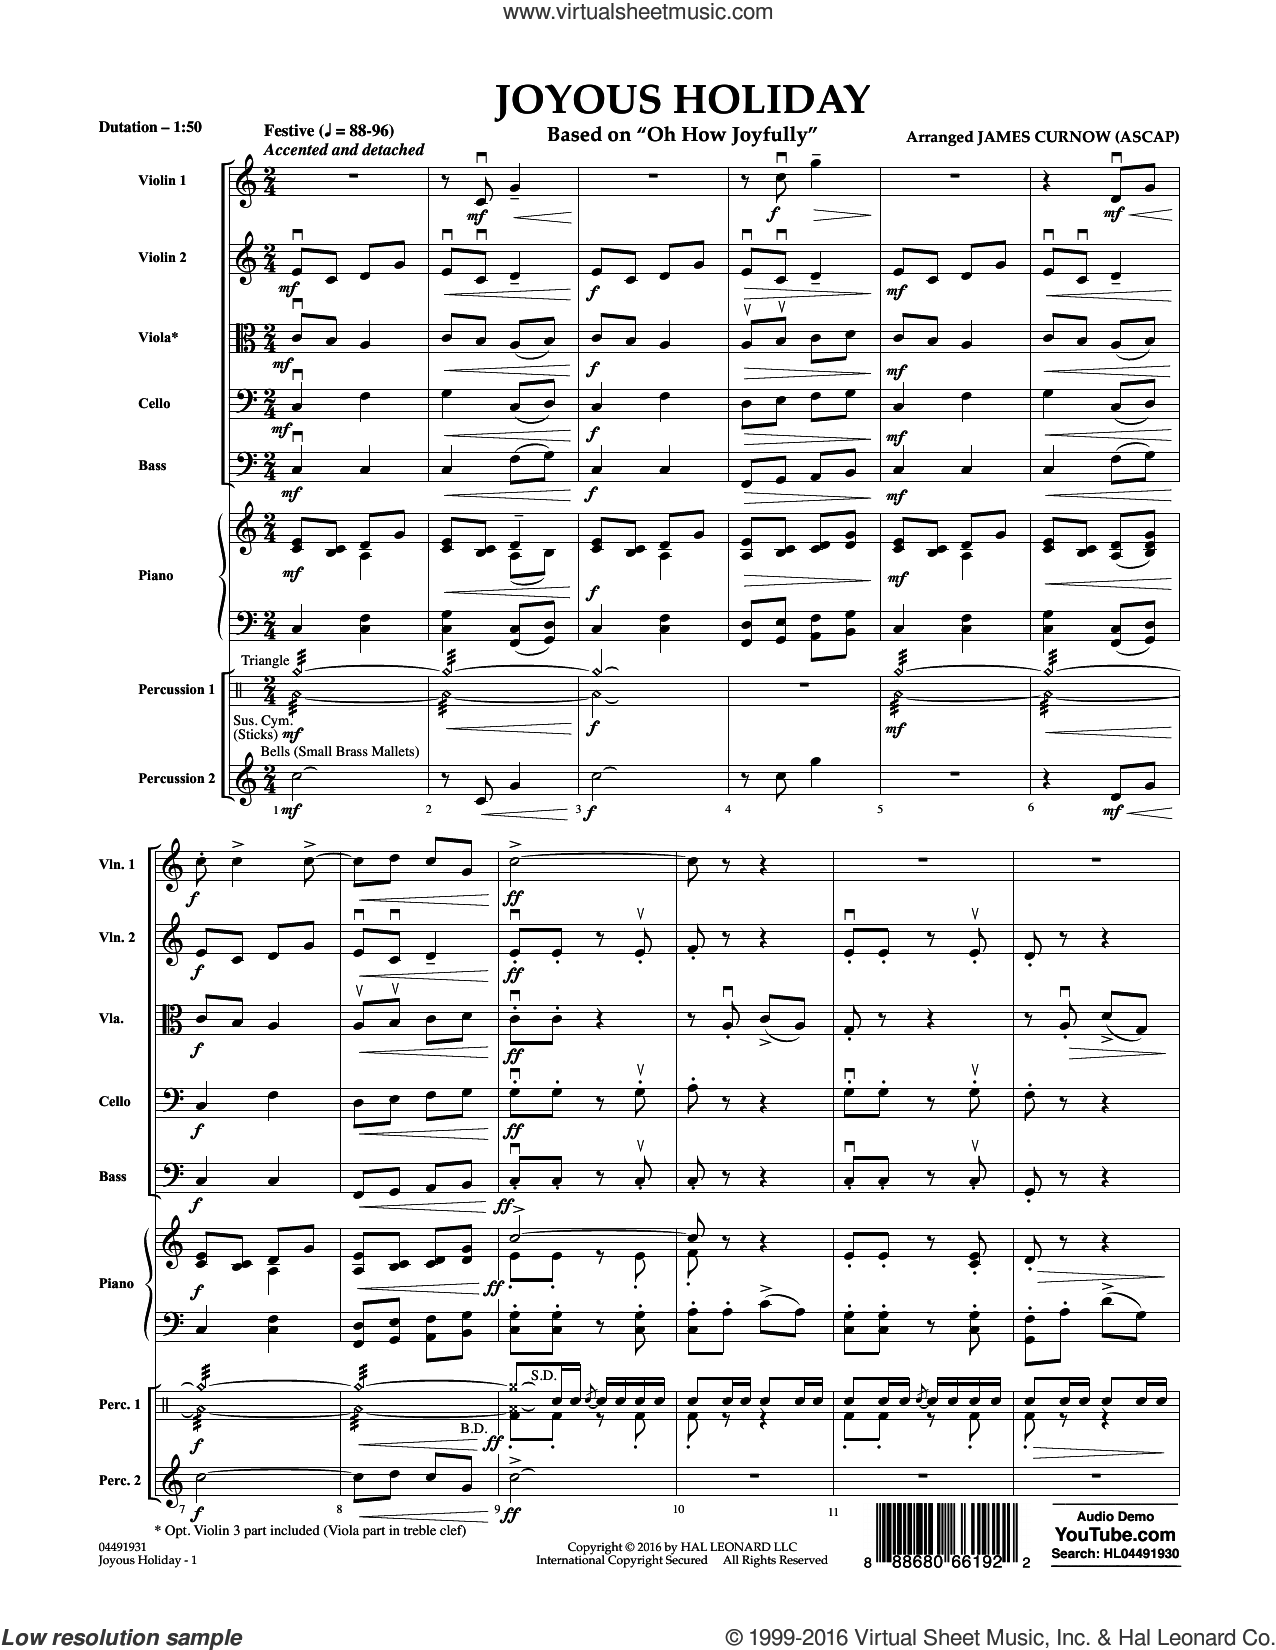 Joyous Holiday (based on Oh How Joyfully) (COMPLETE) sheet music for orchestra by James Curnow